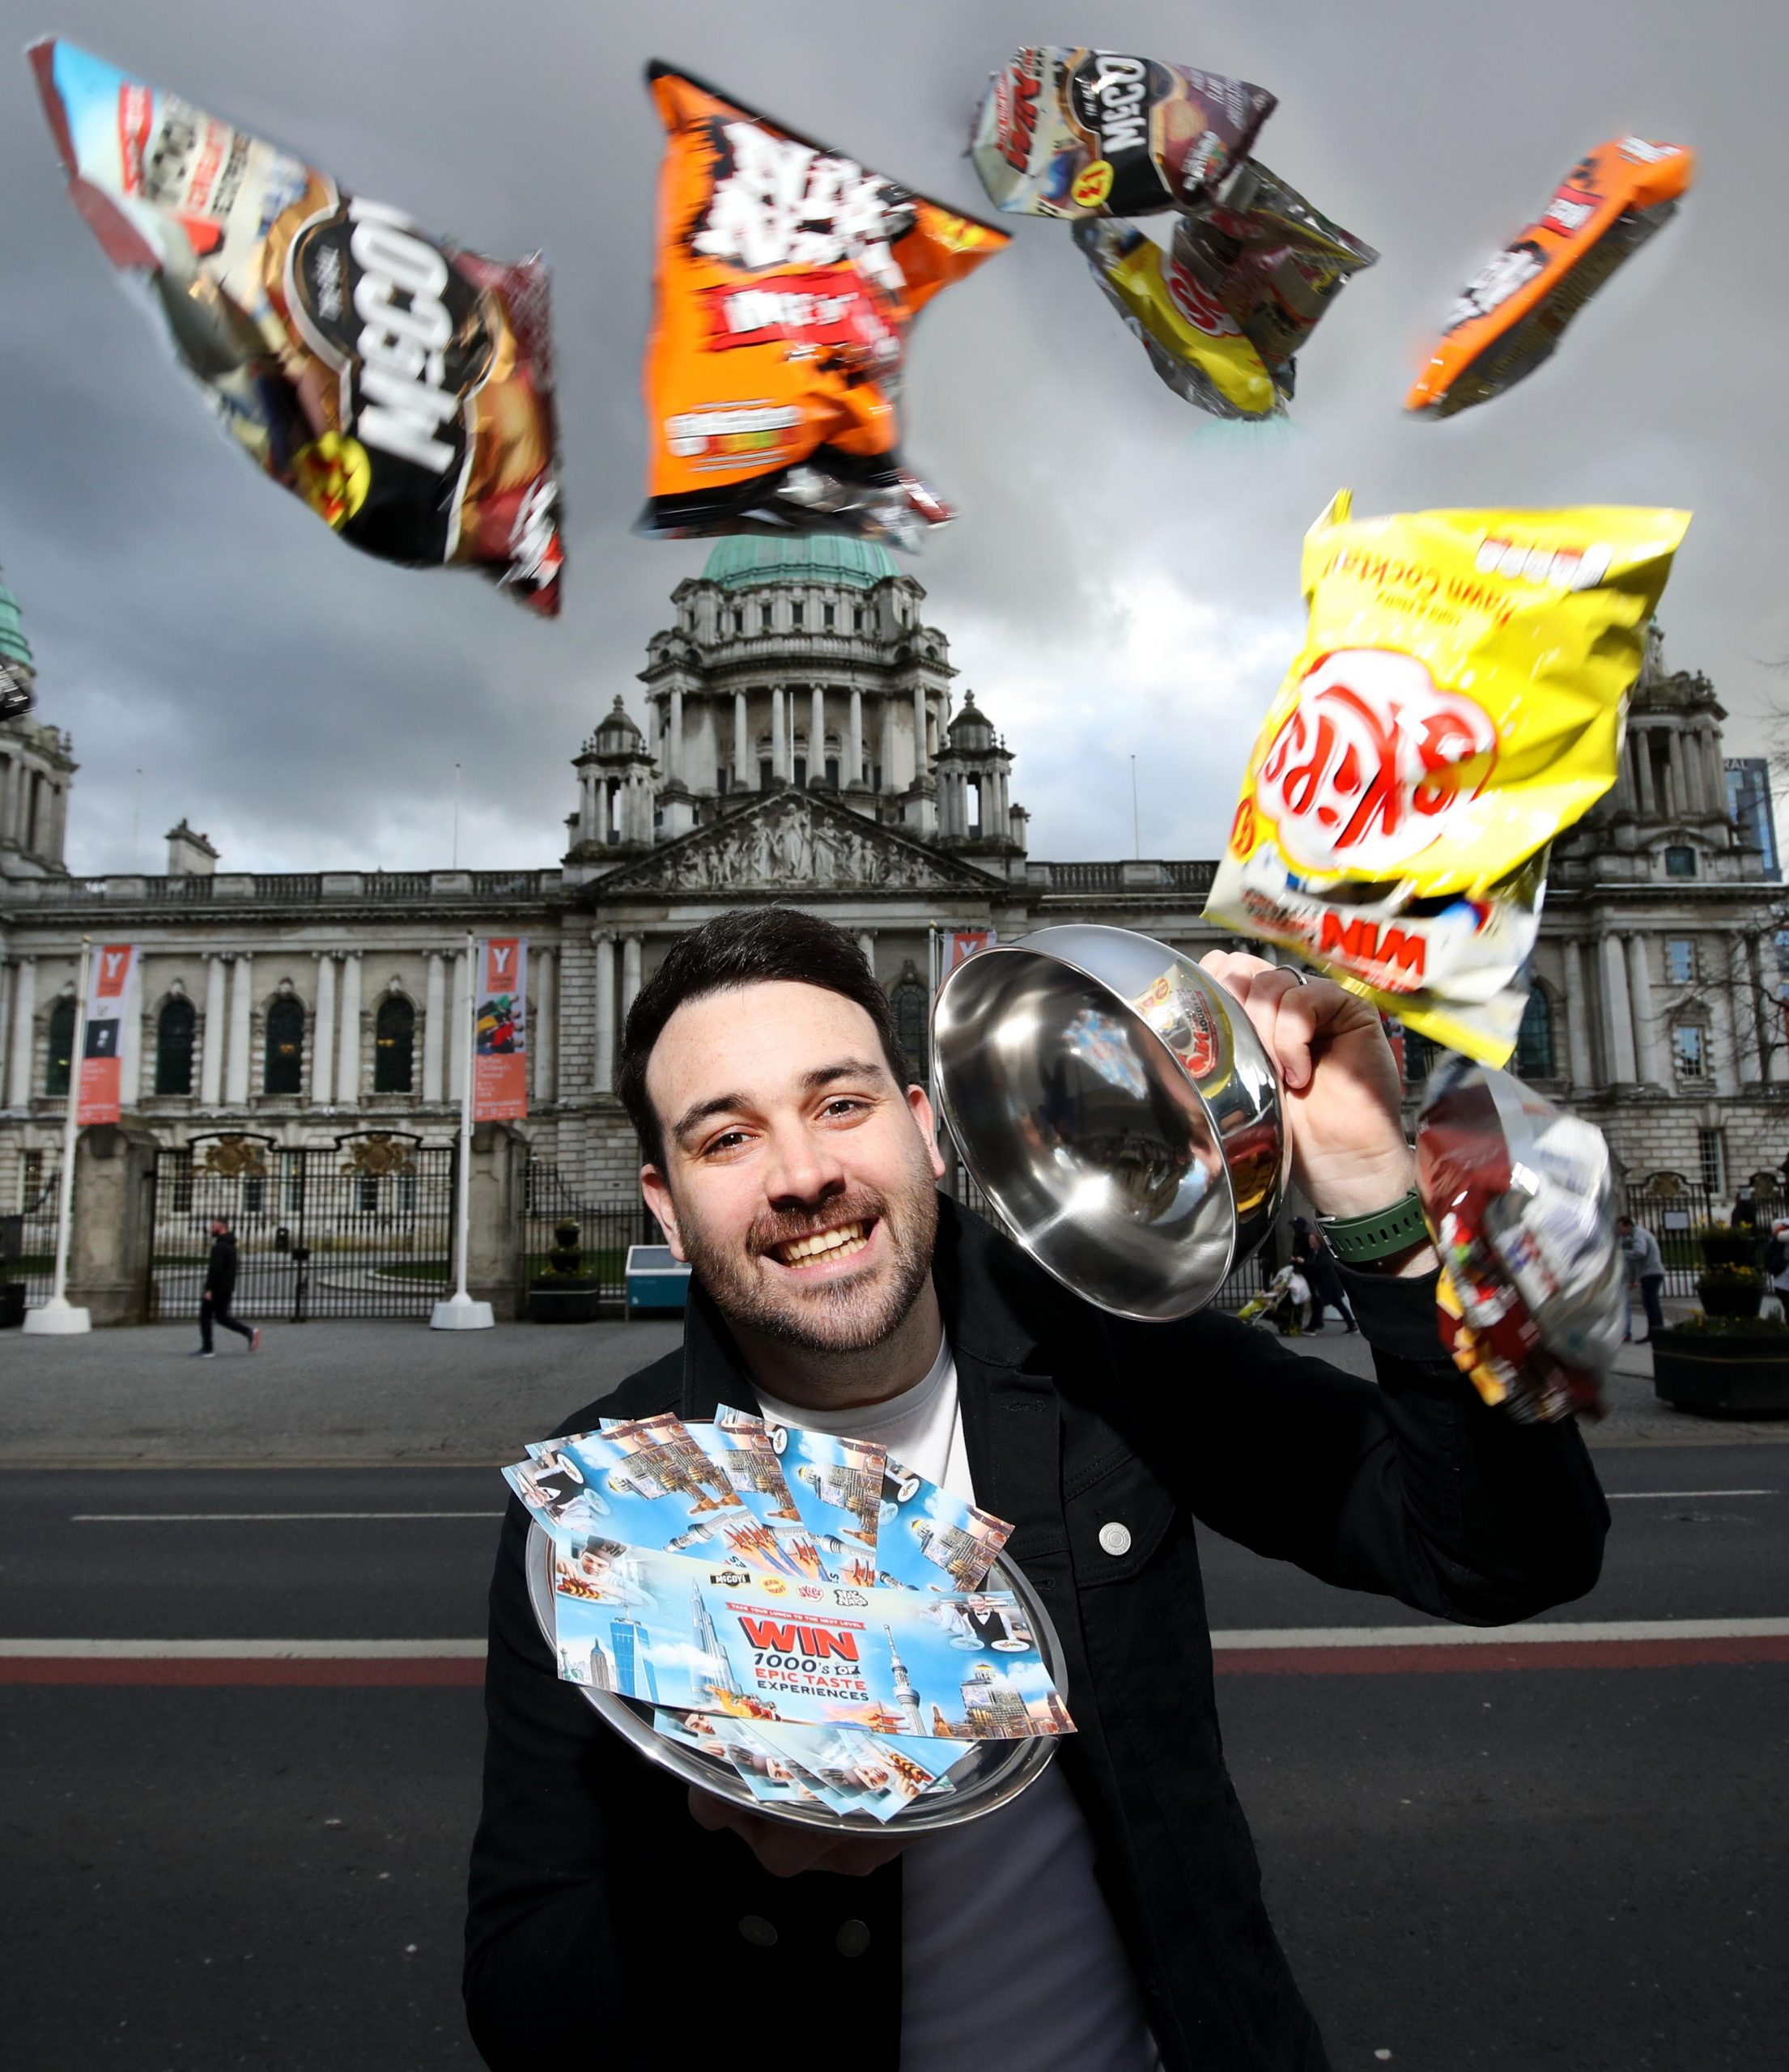 Take your lunch to the next level with KP Snacks: The Belfast Food Blogger Conor Hogan has launched a tasty campaign that gives you the chance to win from a menu of prizes including amazing 5-night trips to Dubai, Tokyo, Bangkok or NYC to enjoy lunch in a skyscraper, plus £1000 in cash! There are also thousands of pounds worth of local restaurant vouchers being given away. This is part of KP Snacks' biggest ever campaign which offers Northern Ireland crisp lovers the chance of winning 1000's of great taste experiences when they pick up campaign branded bags of McCoy's, Skips, Nik Naks and Hula Hoops from now until the end of May. MEDIA ENQUIRIES: For further information, please contact Ciara Kinkead of Duffy Rafferty Communications on 028 9073 0880.